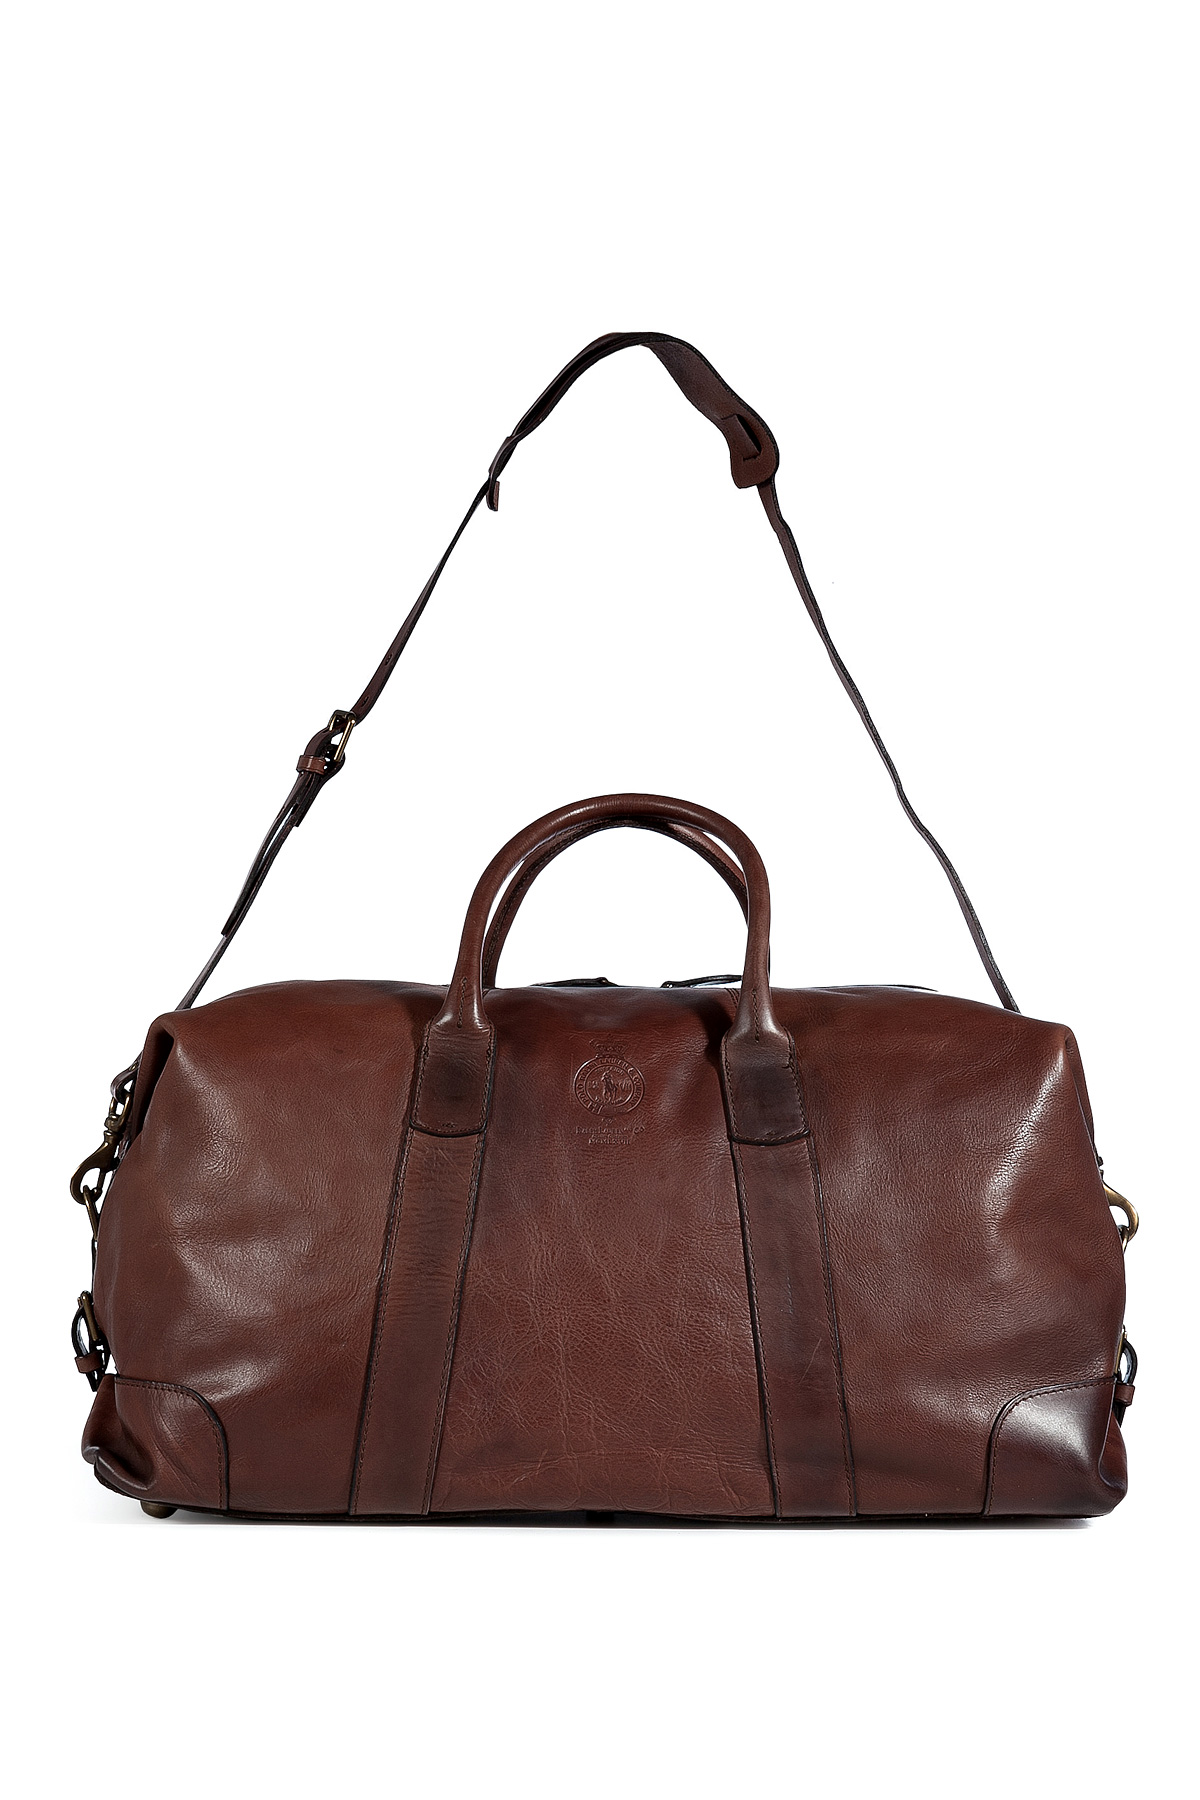 4b5d17f2a7 ... canada lyst ralph lauren brown leather overnight duffle bag in brown  for men c5cea 010a4